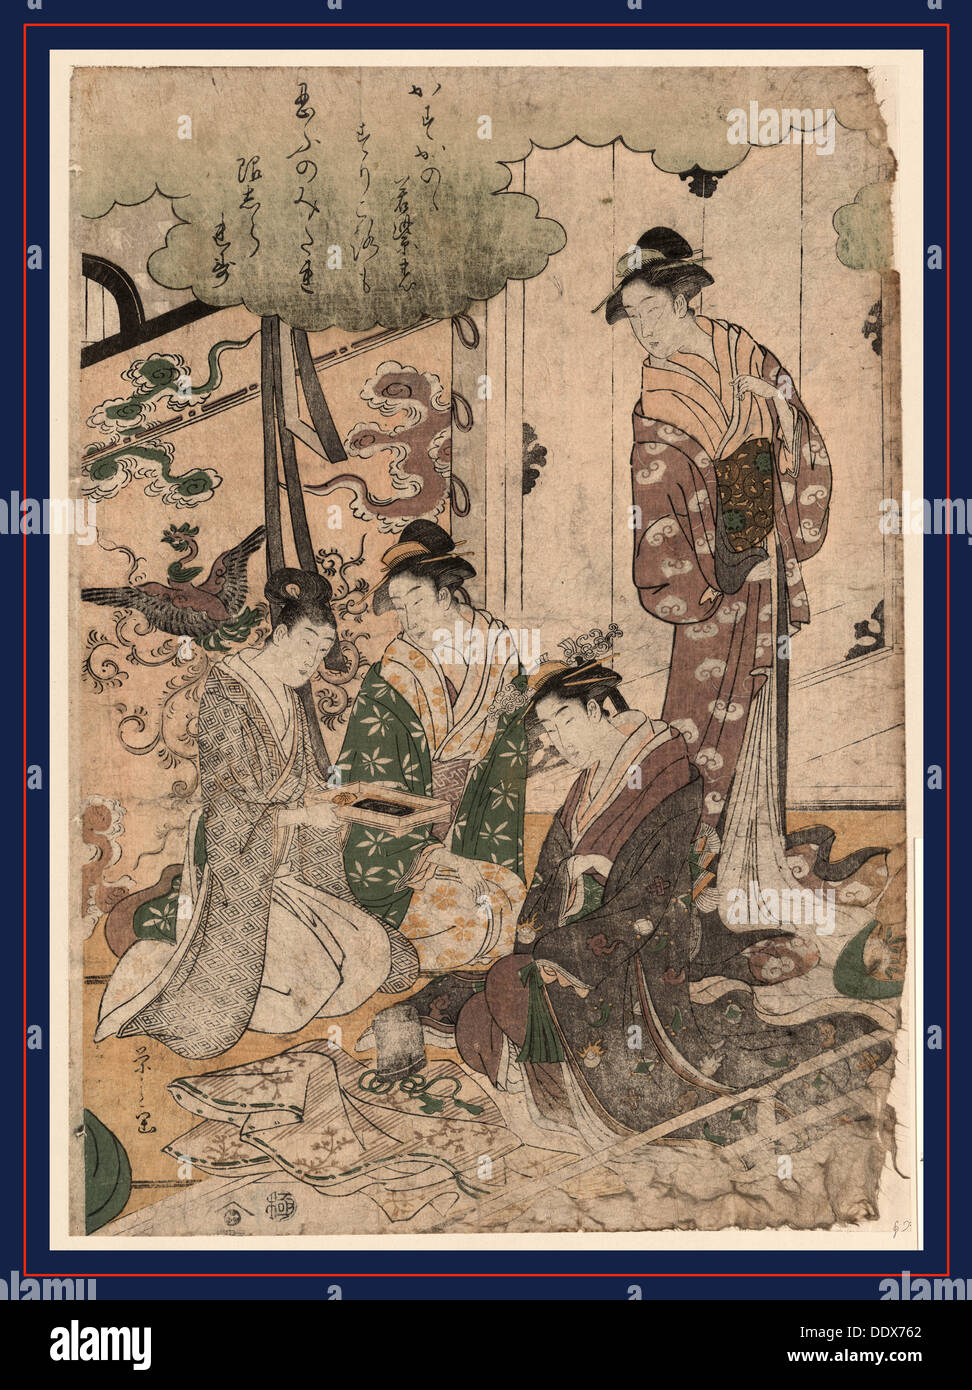 Ise monogatari, Tale of Ise. [between 1789 and 1795], 1 print : woodcut, color ; 35.4 x 25 cm., Print shows three women, two - Stock Image